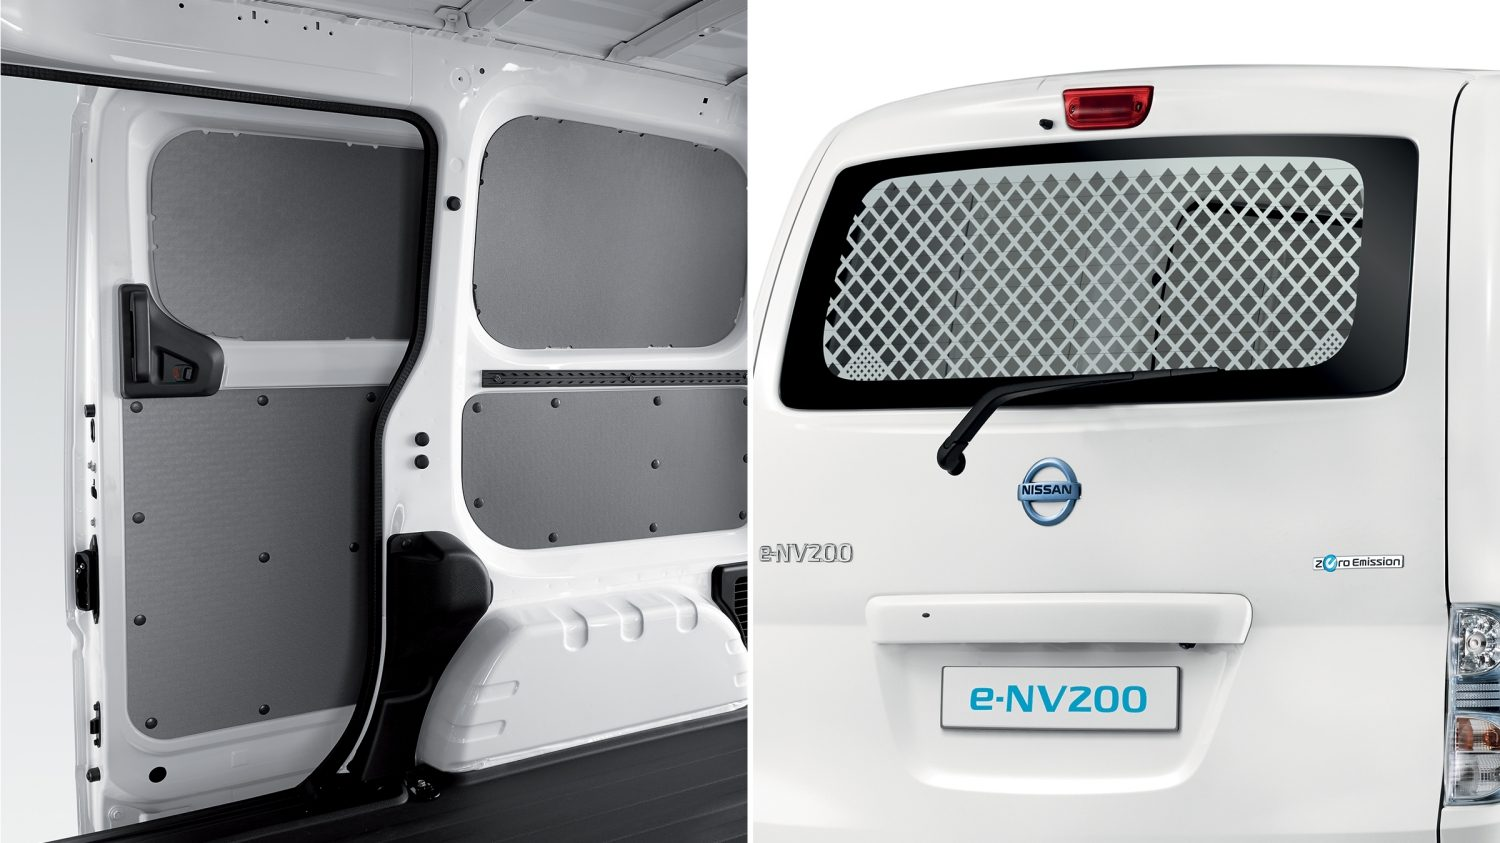 Accessori e-NV200 VAN più venduti